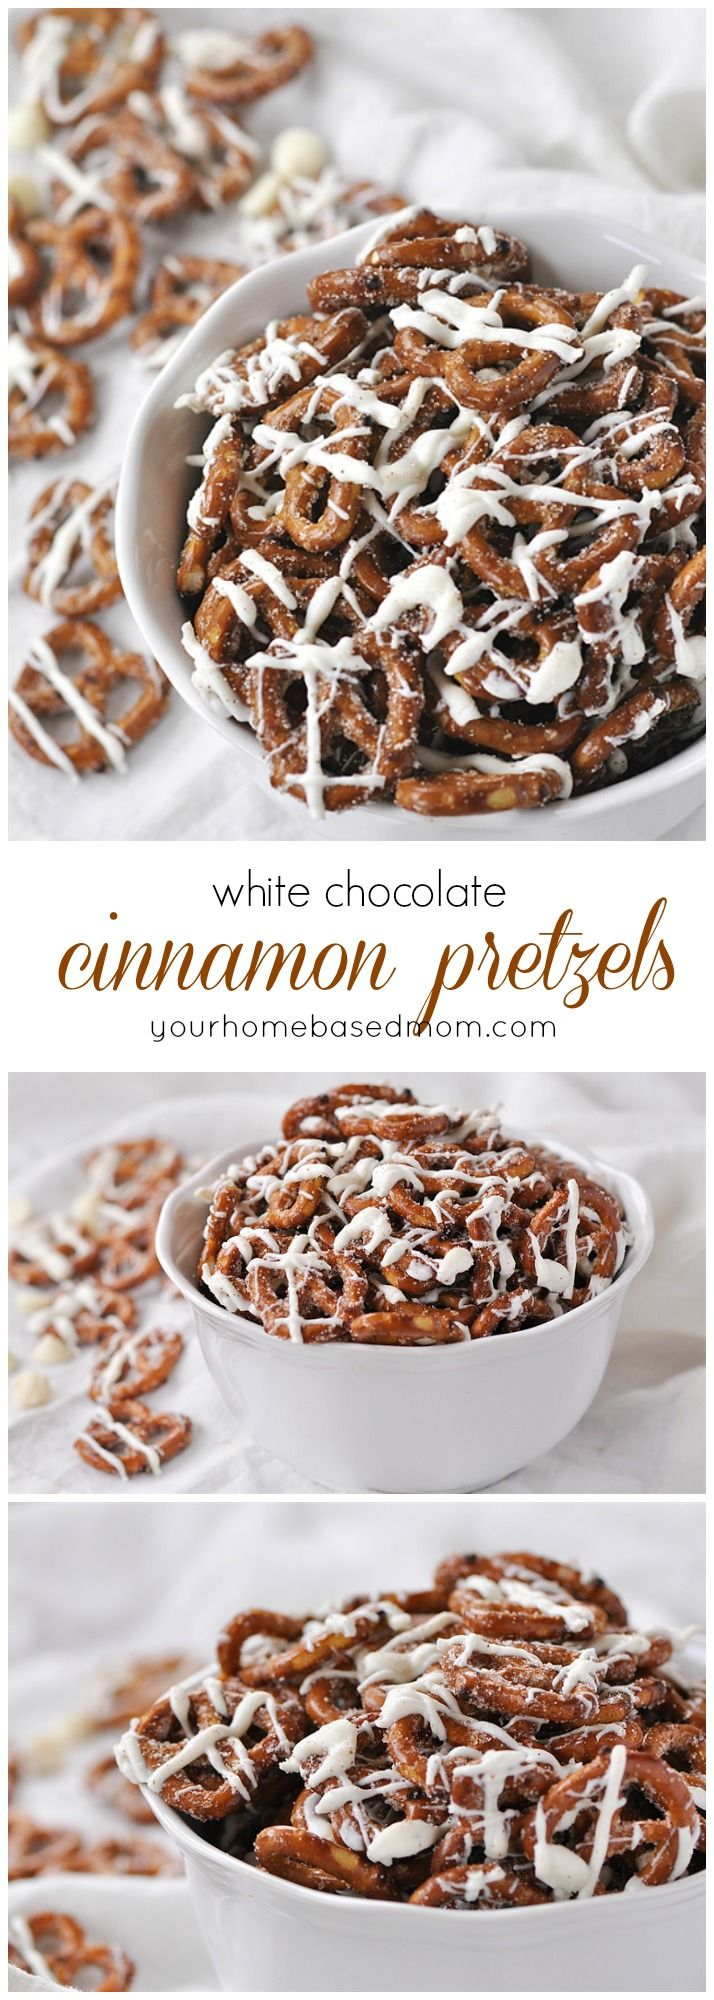 White Chocolate Cinnamon Pretzels - the quickest and easiest and most delicious treat you'll ever make!